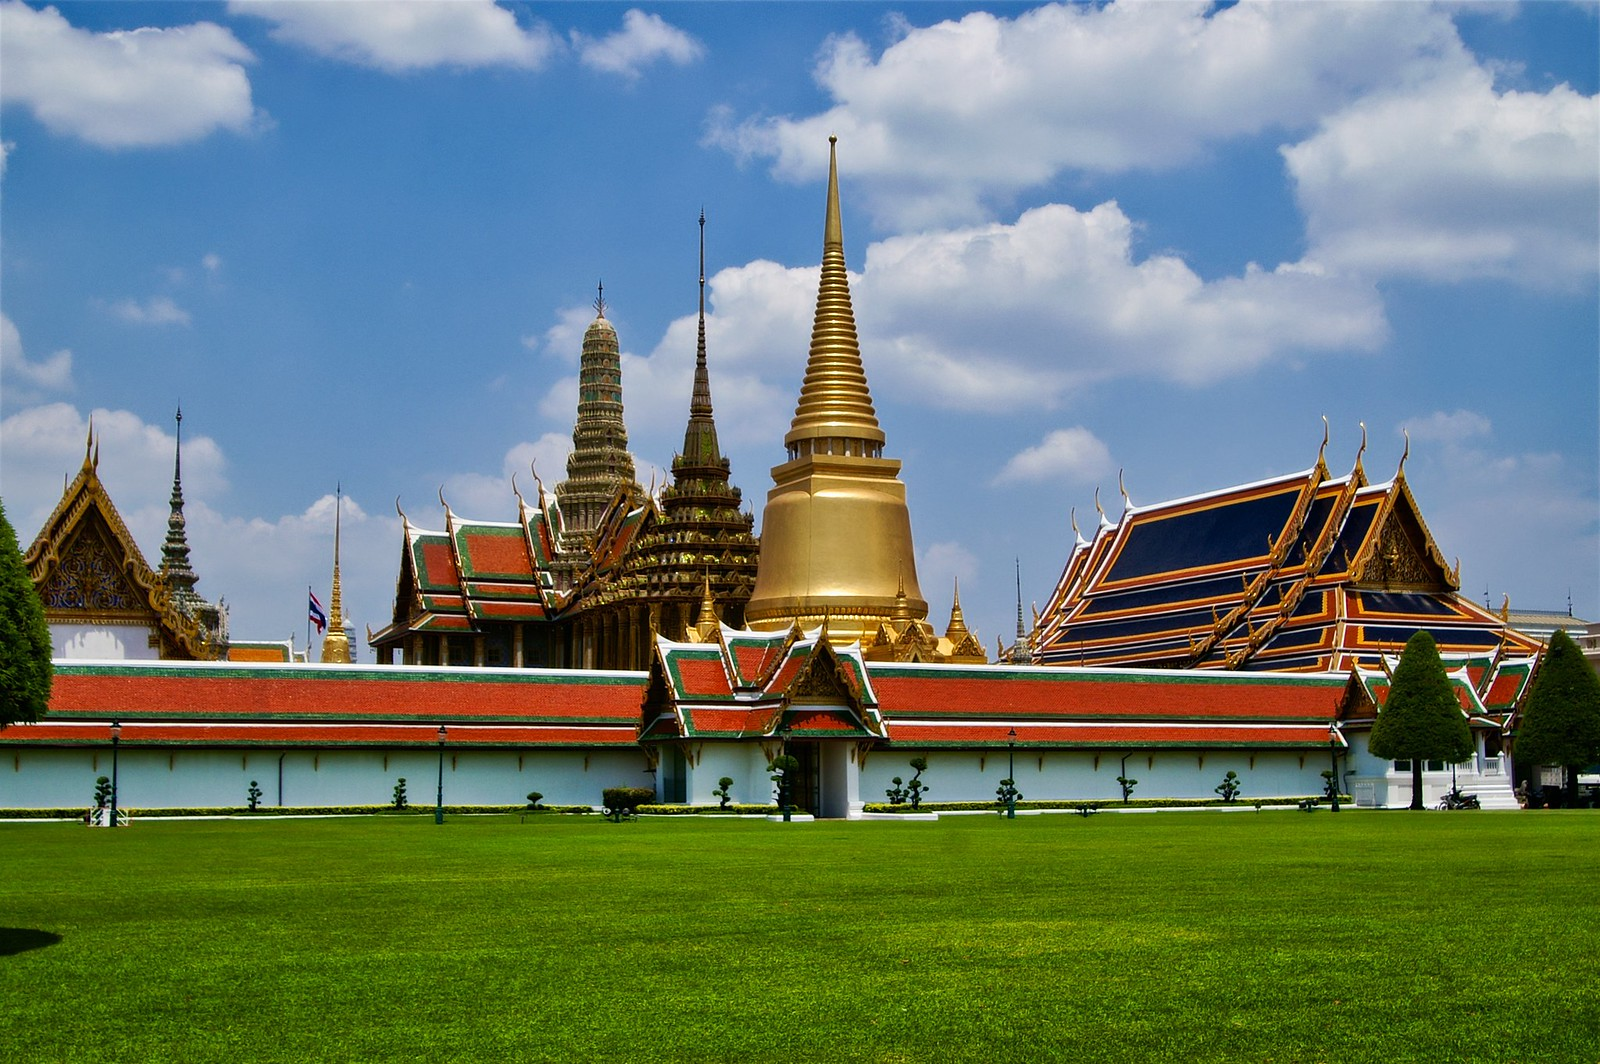 Temple area on the grounds of the Grand Palace in Bangkok